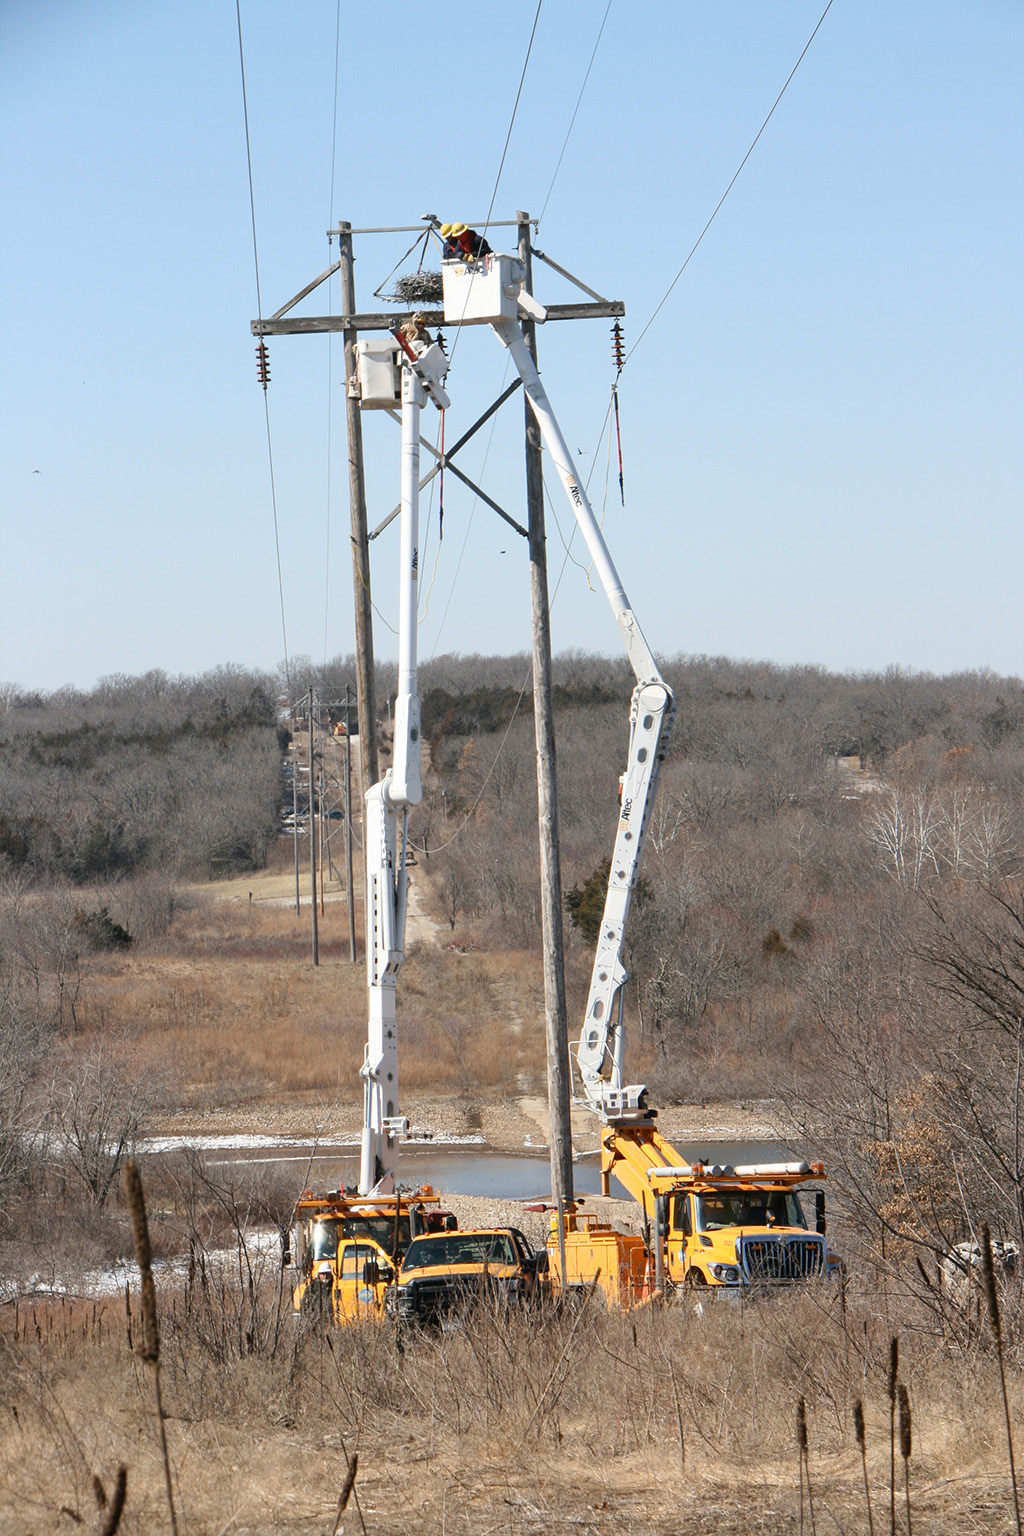 Removal of the osprey nest from the power structure.